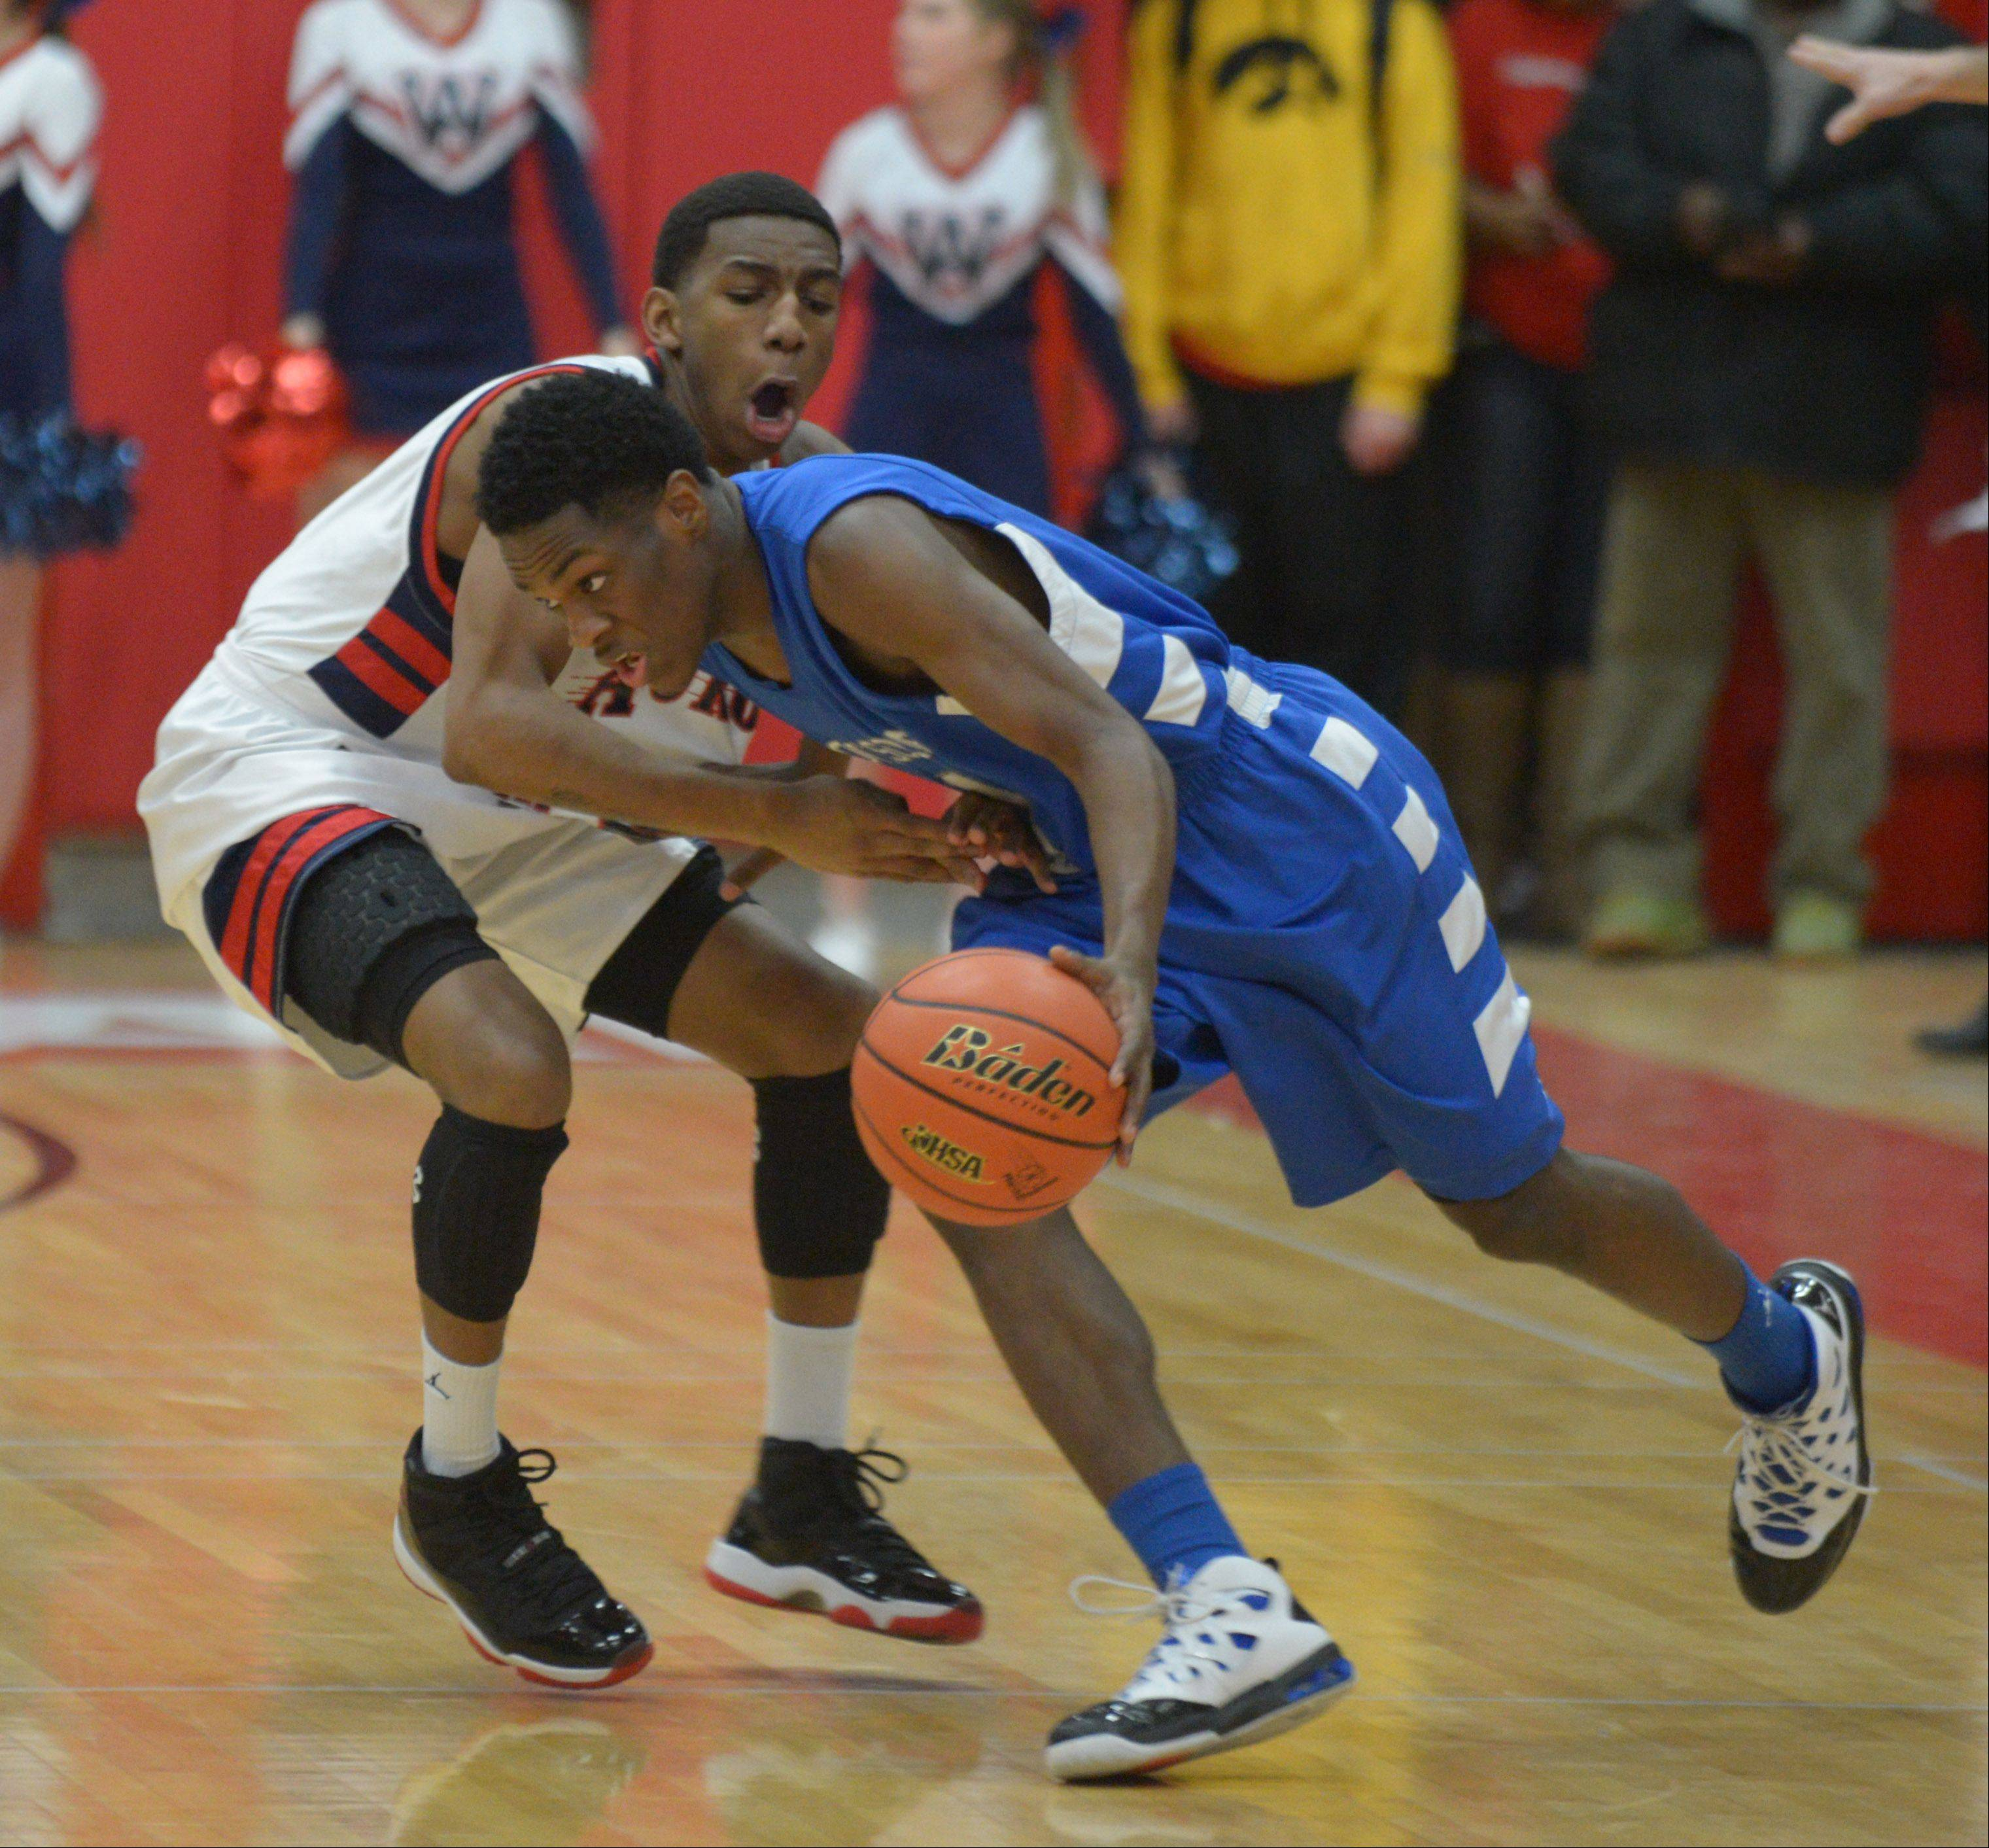 Images: West Aurora vs. Proviso East, boys basketball